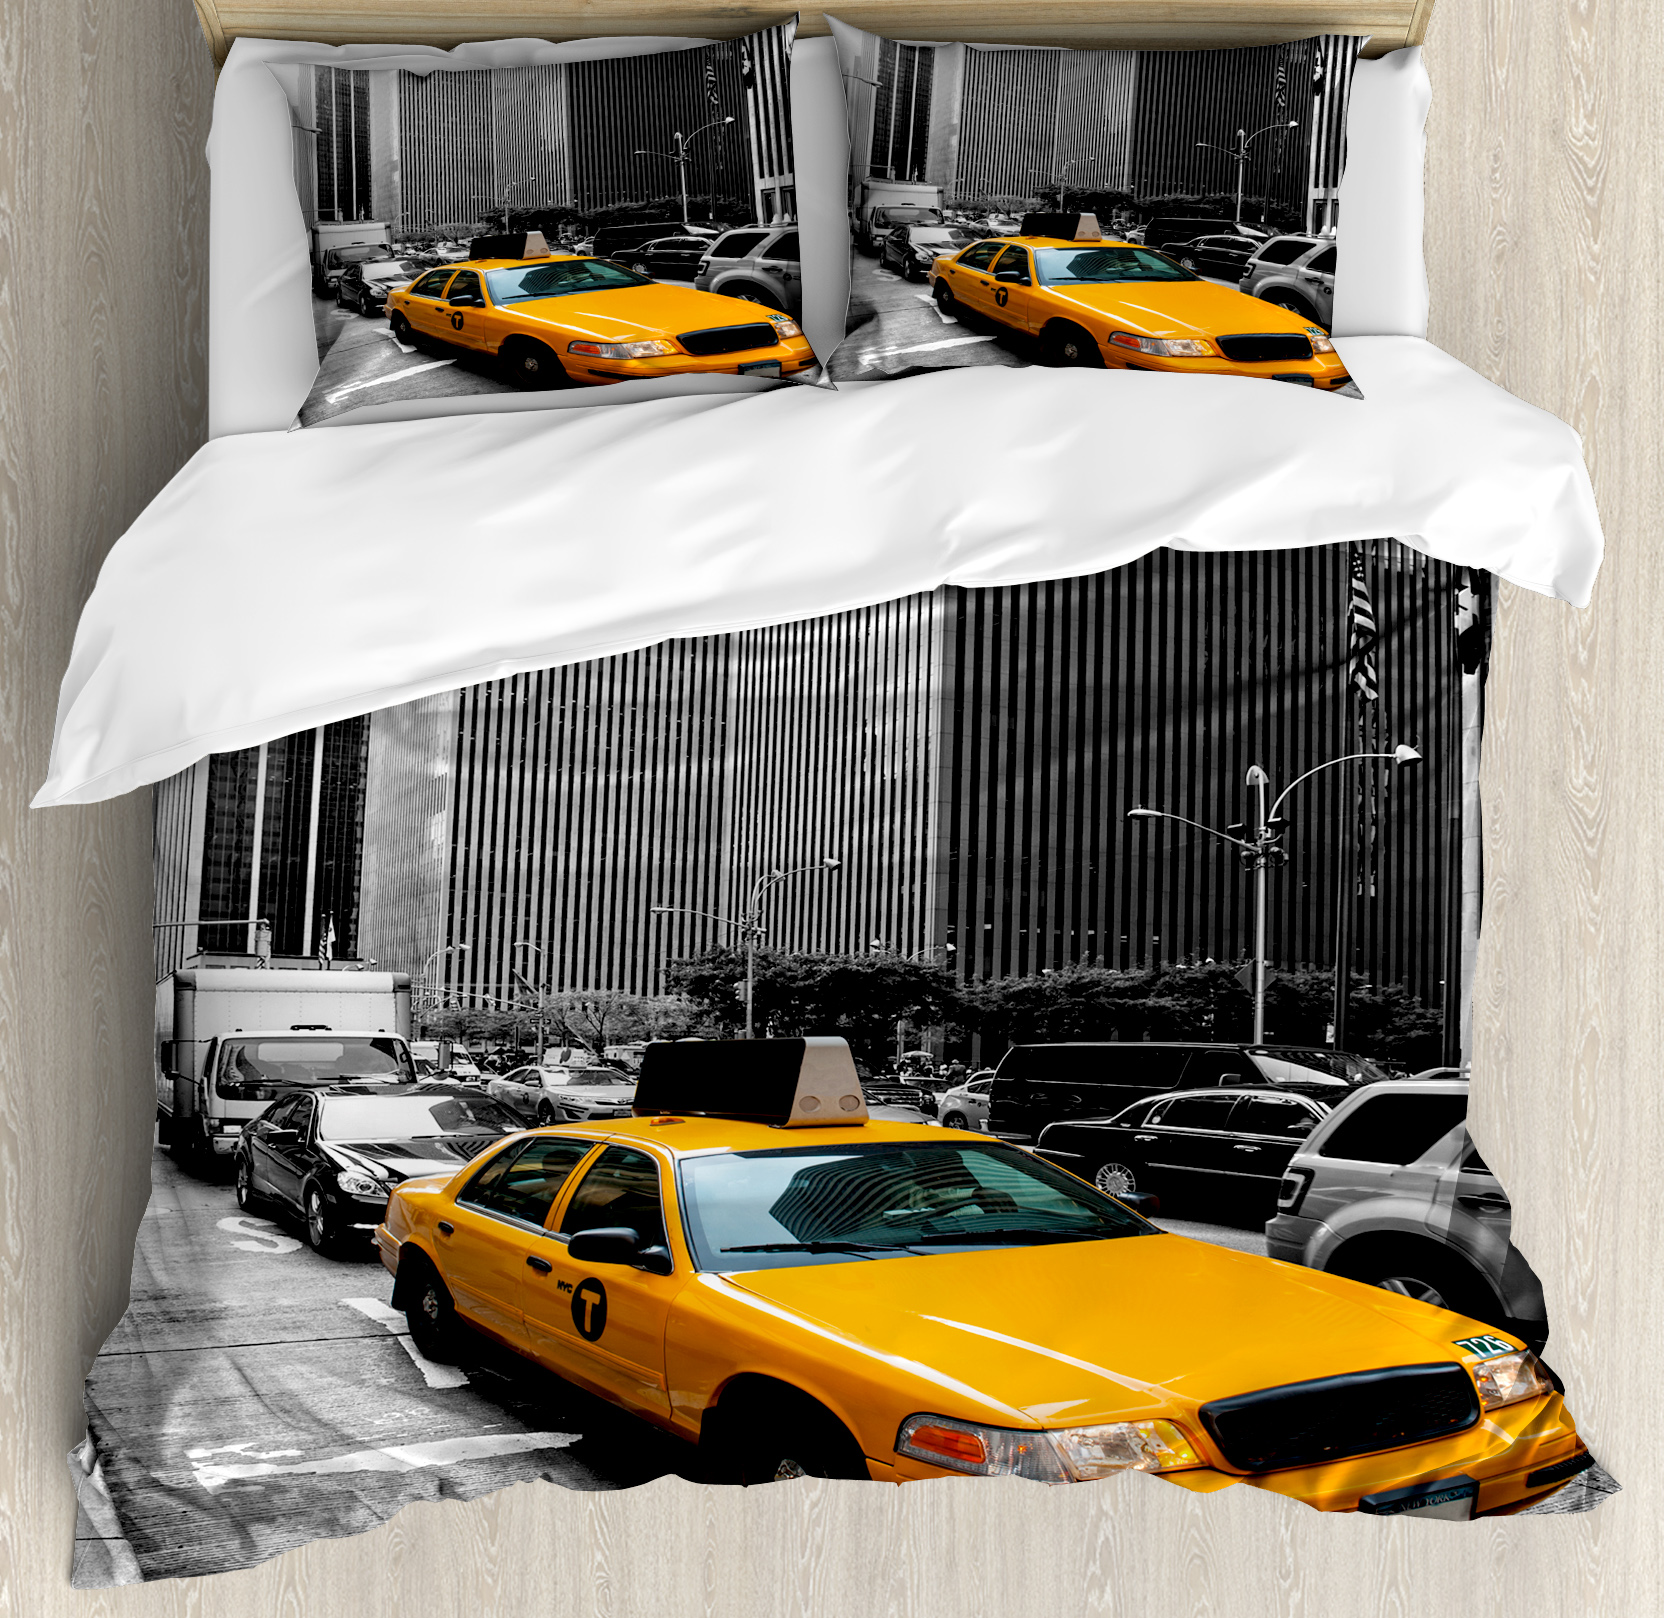 City King Size Duvet Cover Set, Yellow Cab in New York City Touristic Attractions Traffic Road Photography, Decorative 3 Piece Bedding Set with 2 Pillow Shams, Marigold Grey Black, by Ambesonne